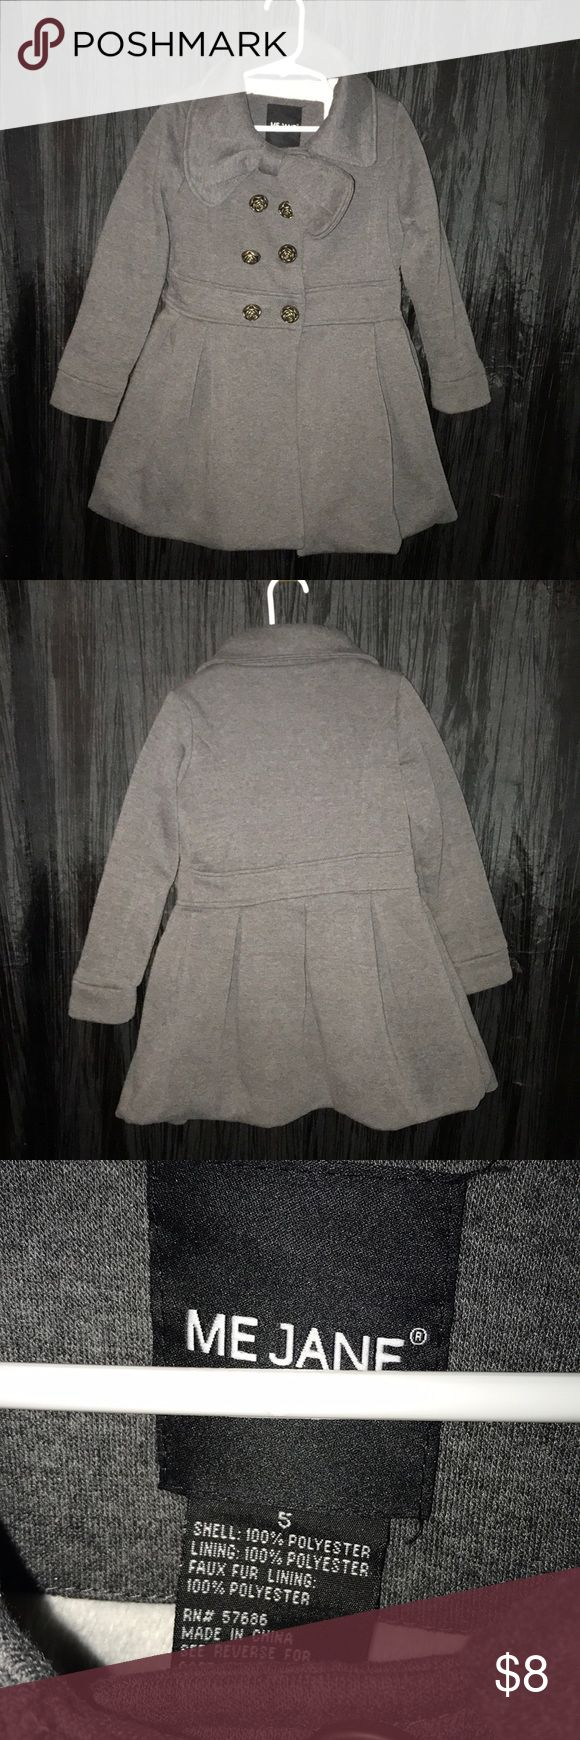 MeJane Girls Peacoat MeJane Girls Peacoat with Bow and Pleats... shows signs of wear Me Jane Jackets & Coats Pea Coats